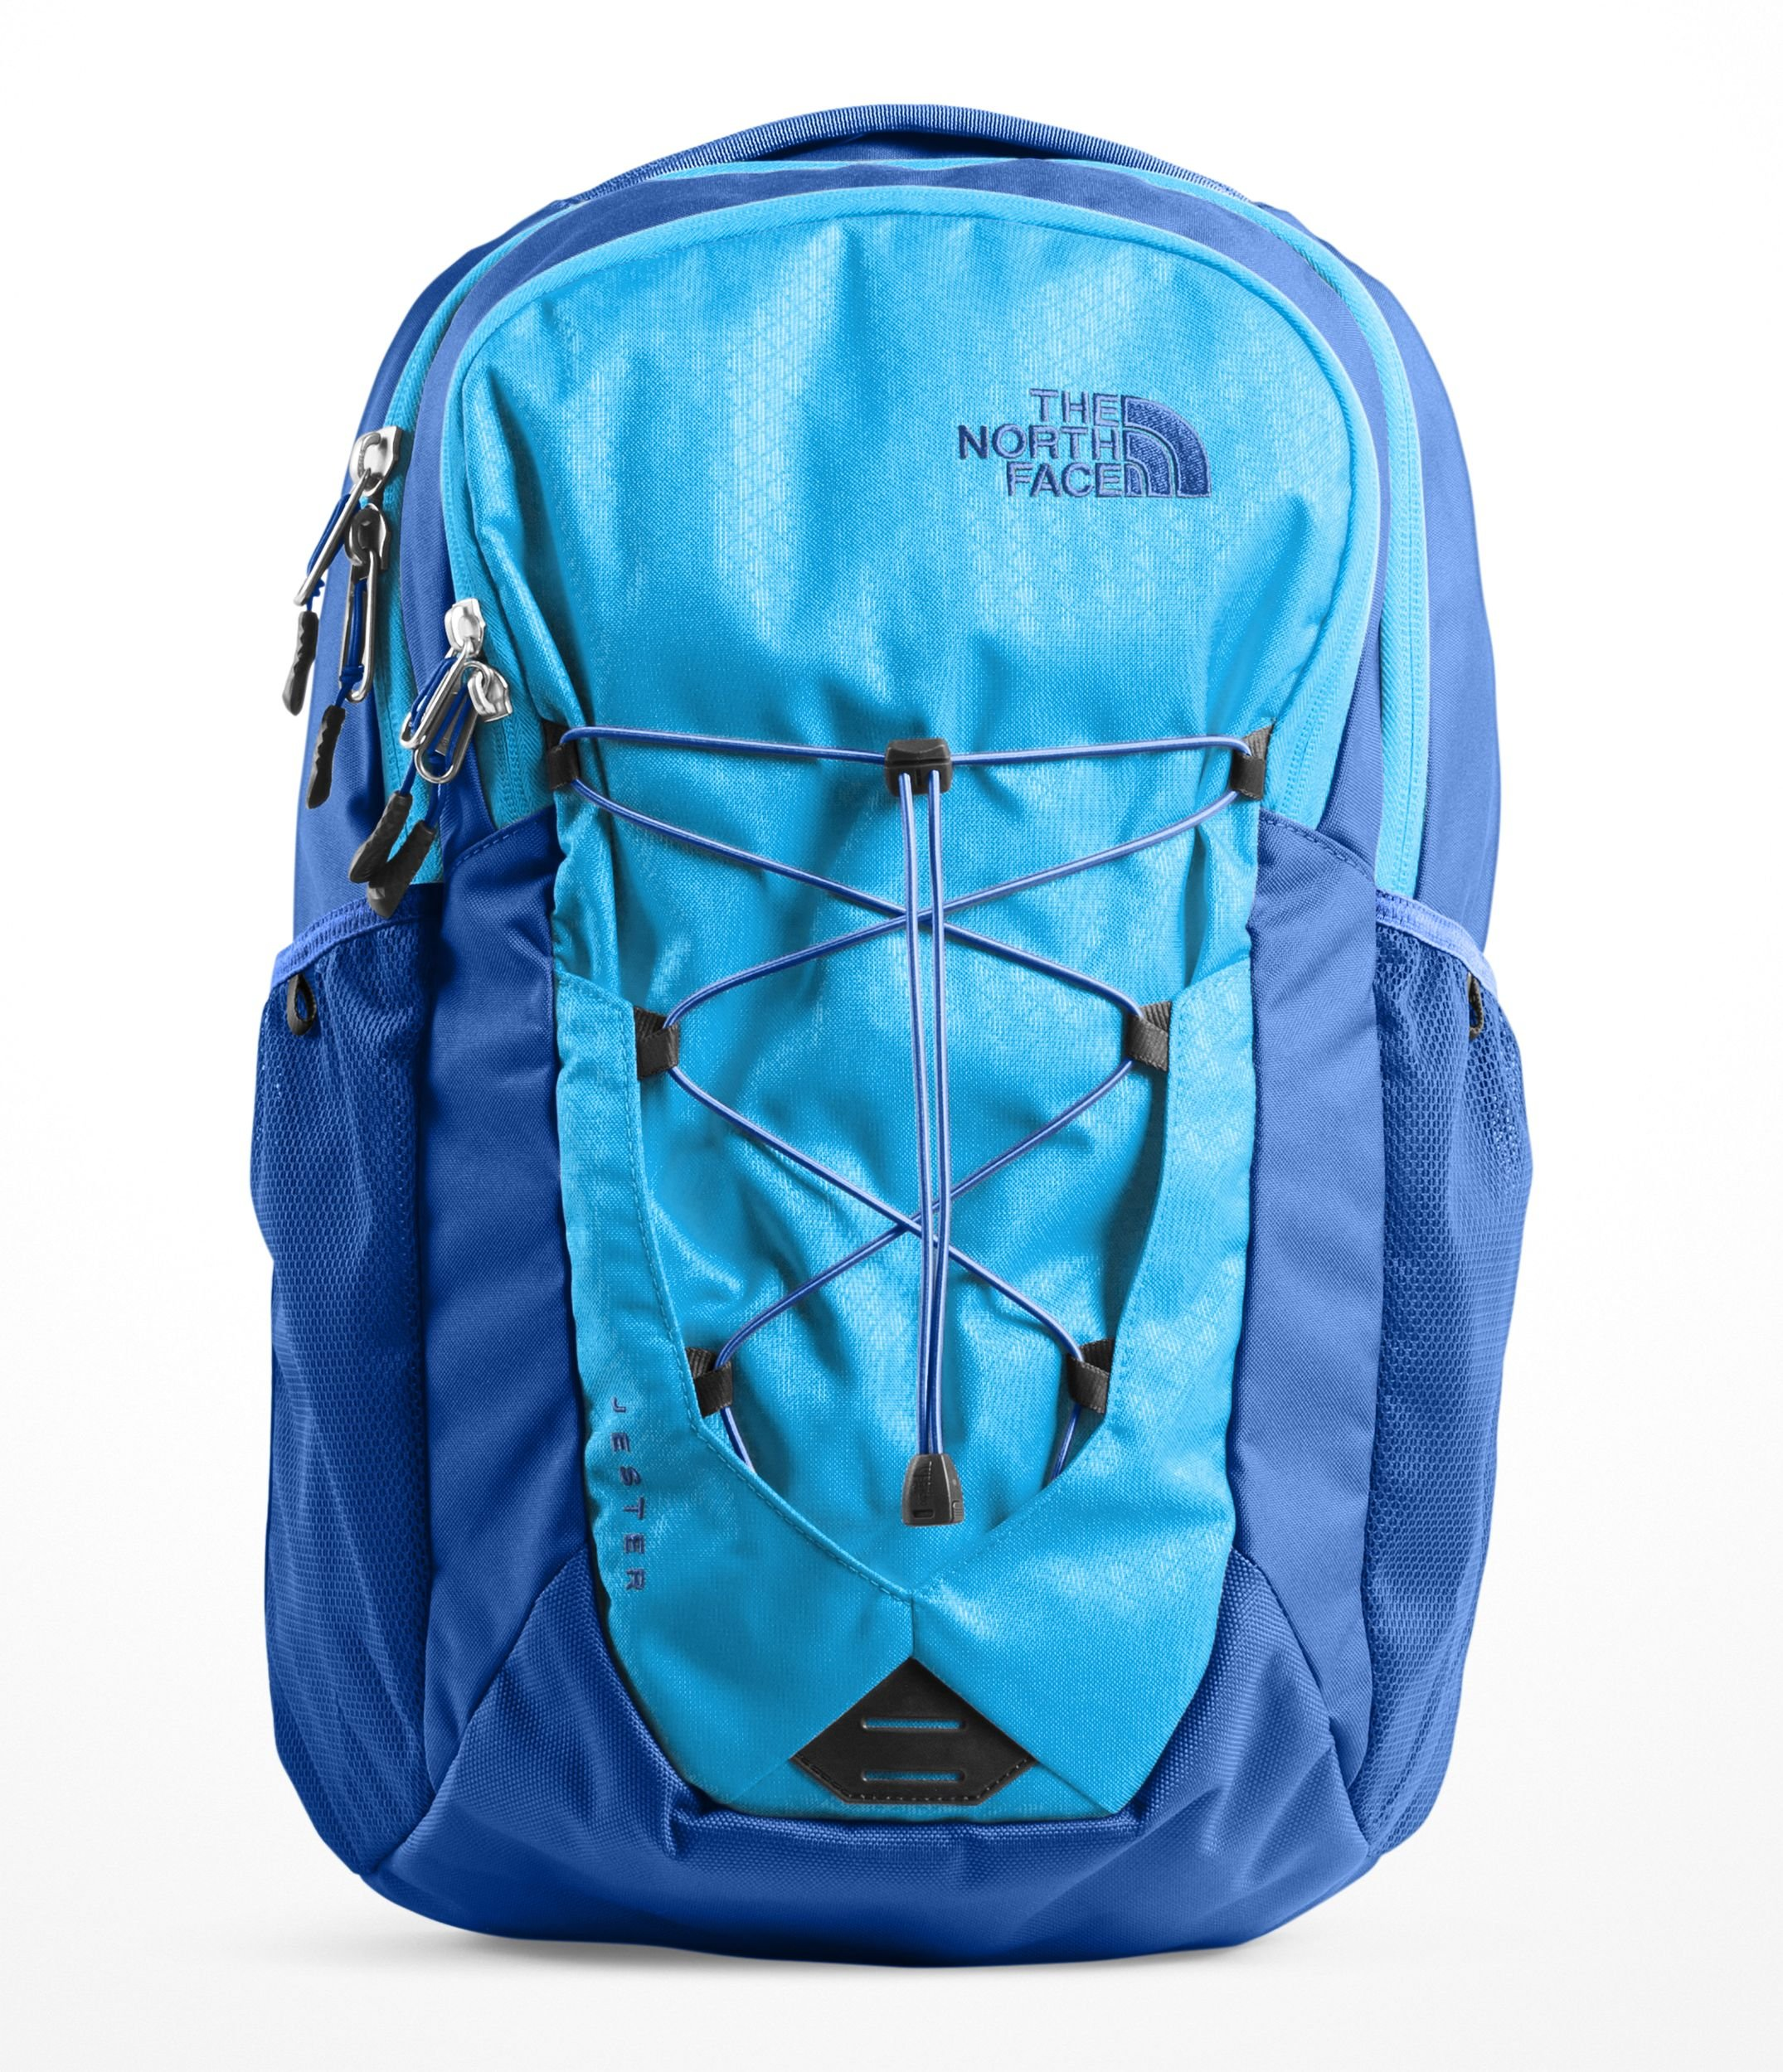 The North Face Jester Backpack, Hyper Blue/Turkish Sea by The North Face